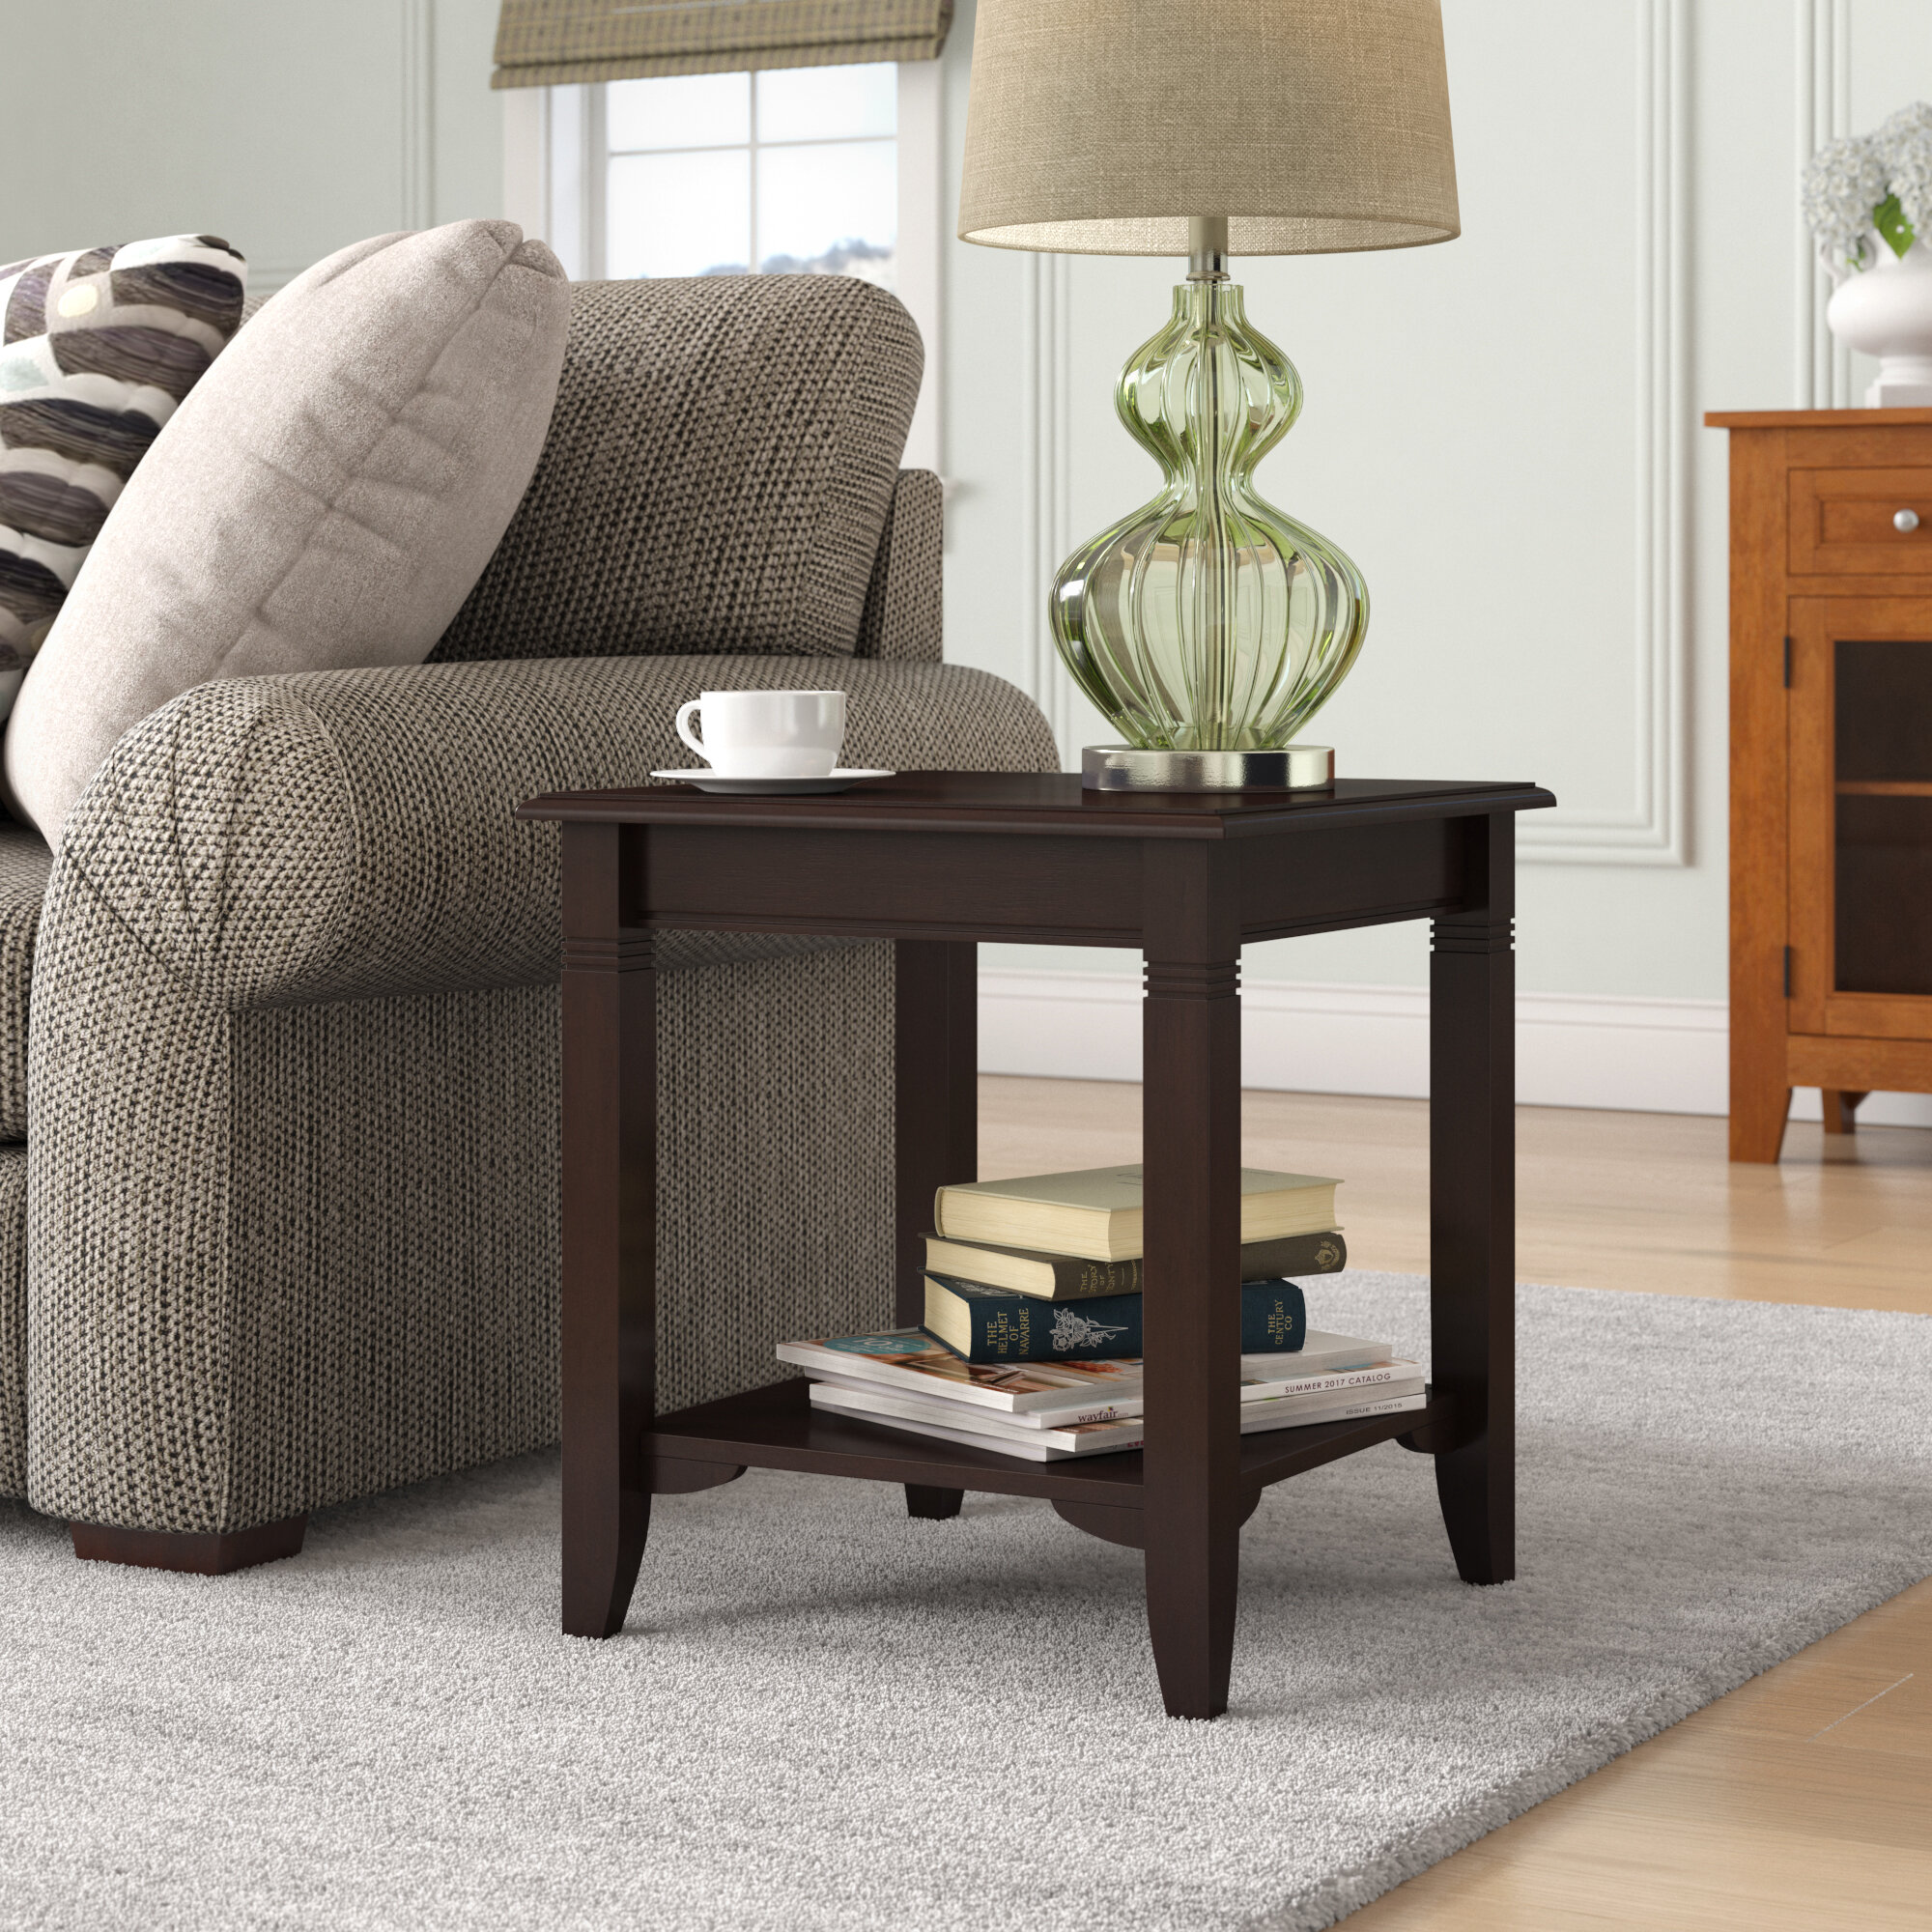 Colin End Table with Storage